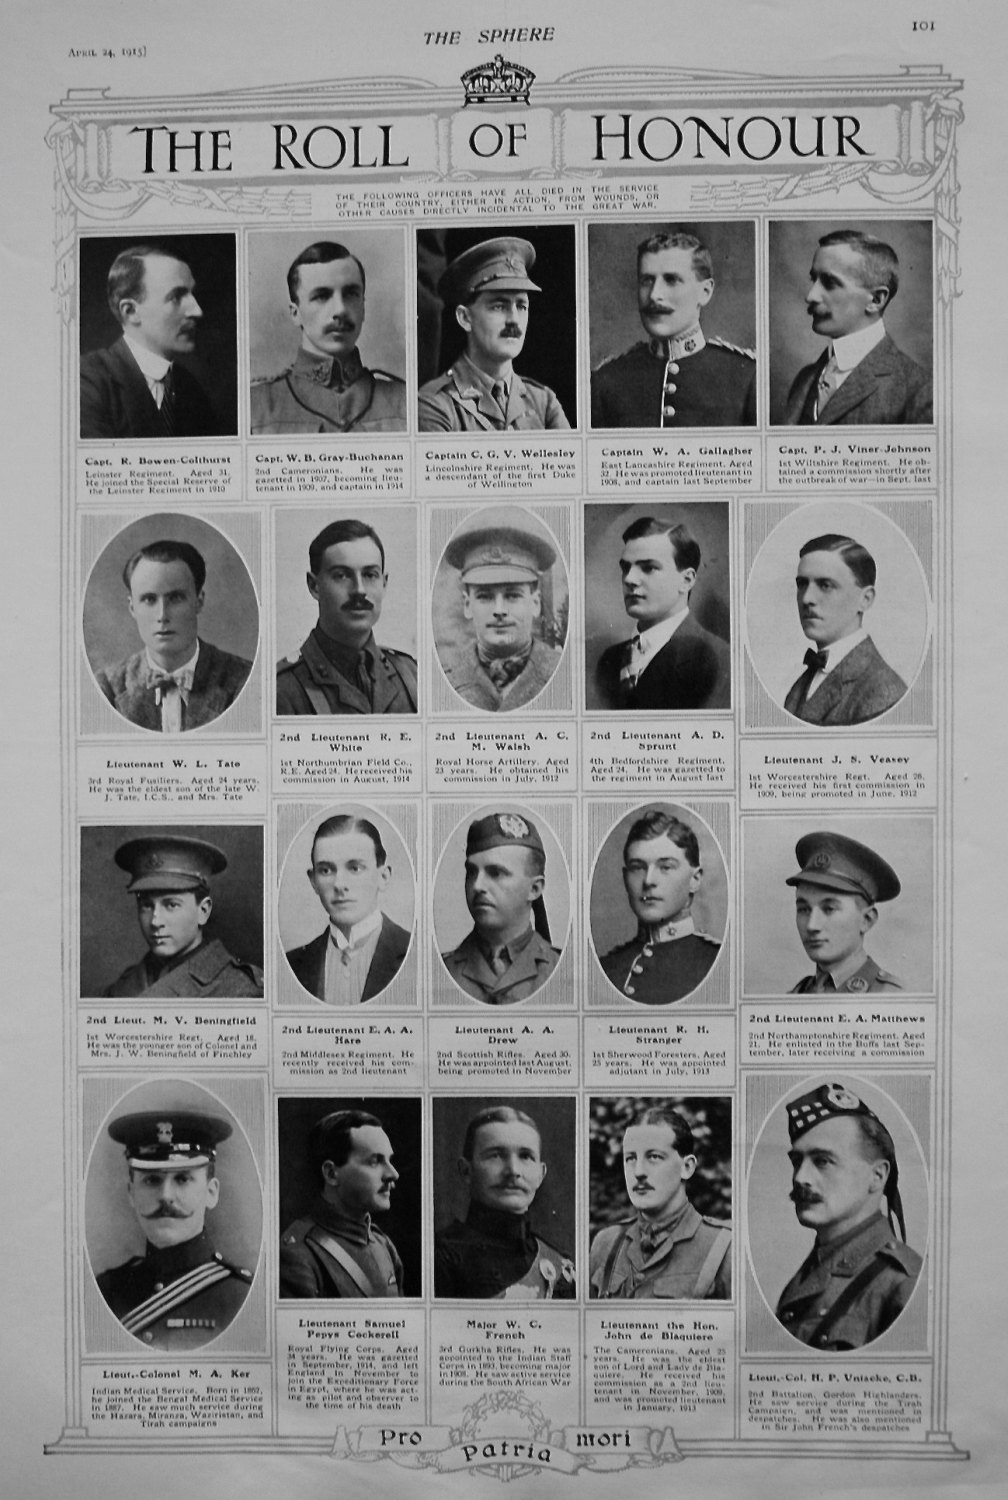 The Roll of Honour. April 24th 1915.